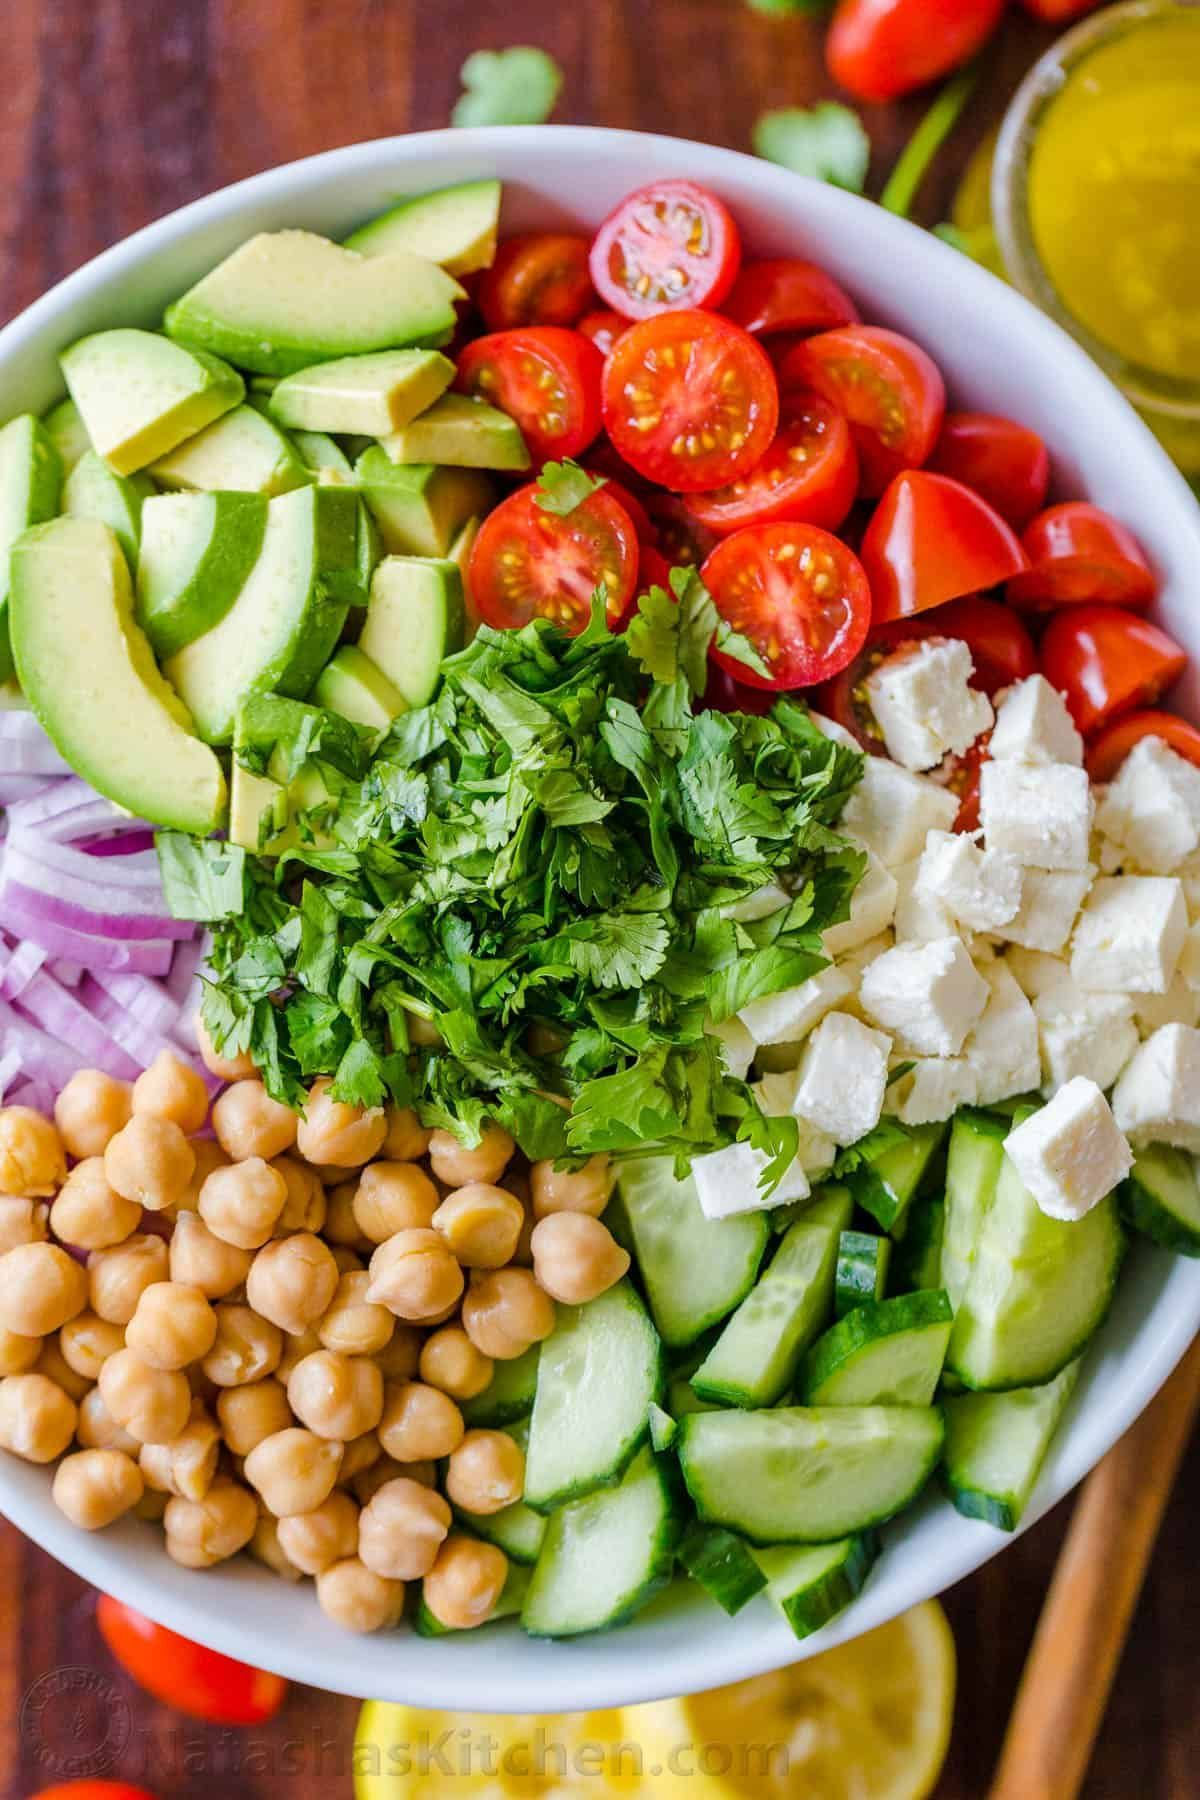 loaded with crisp cucumbers, juicy tomatoes, creamy avocado, feta cheese and chickpeas or garbanzo beans. Fresh, healthy and protein packed!